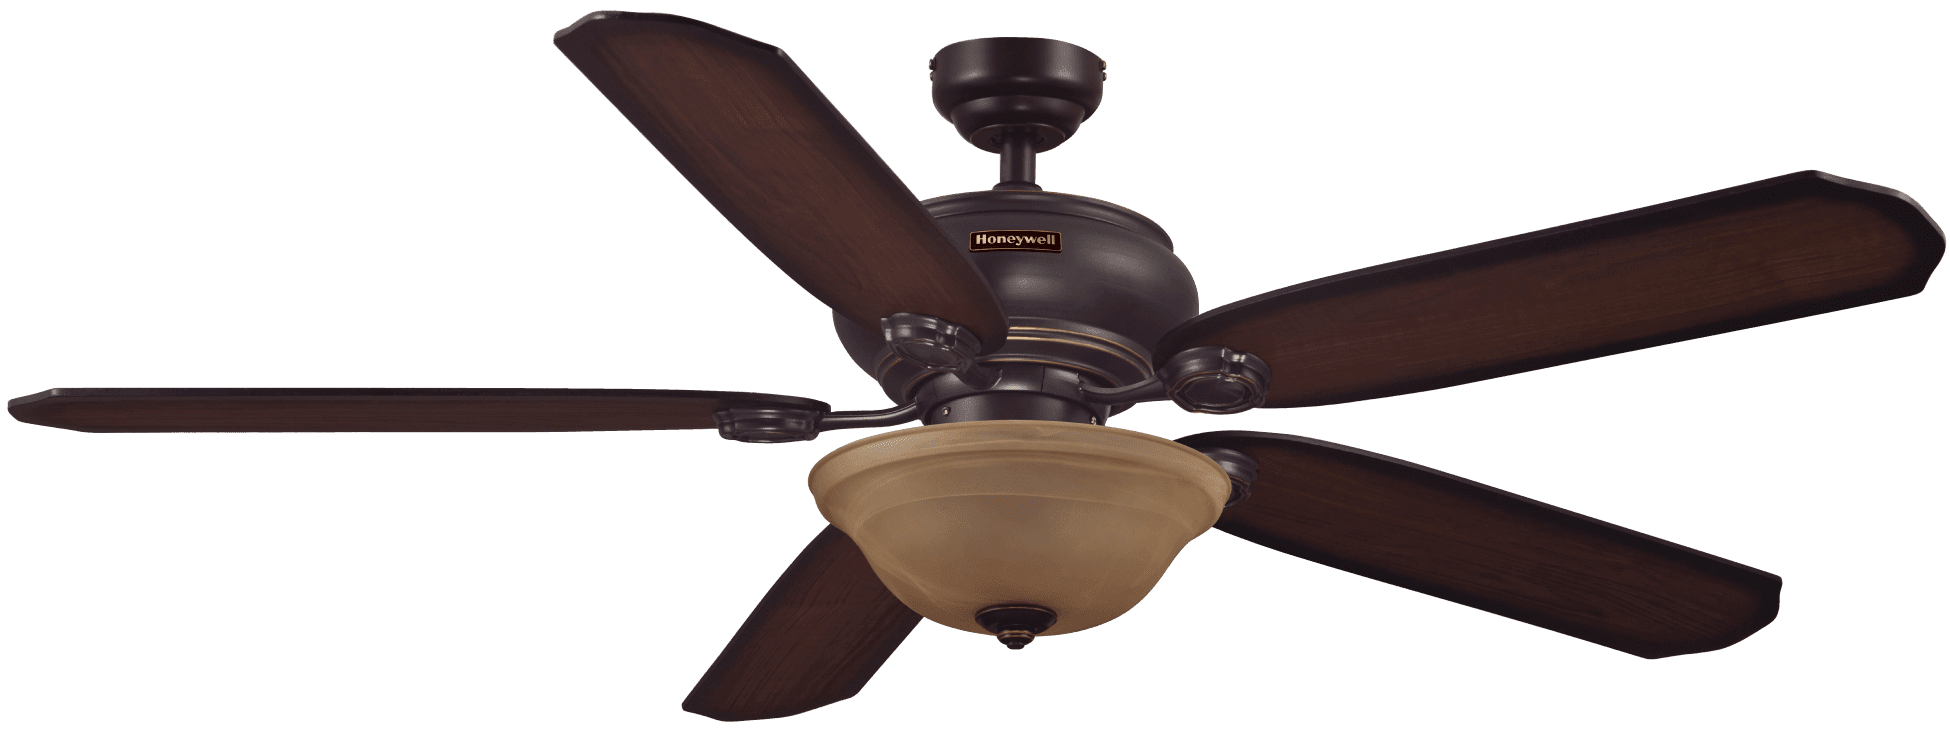 Honeywell Bravada Ceiling Fan